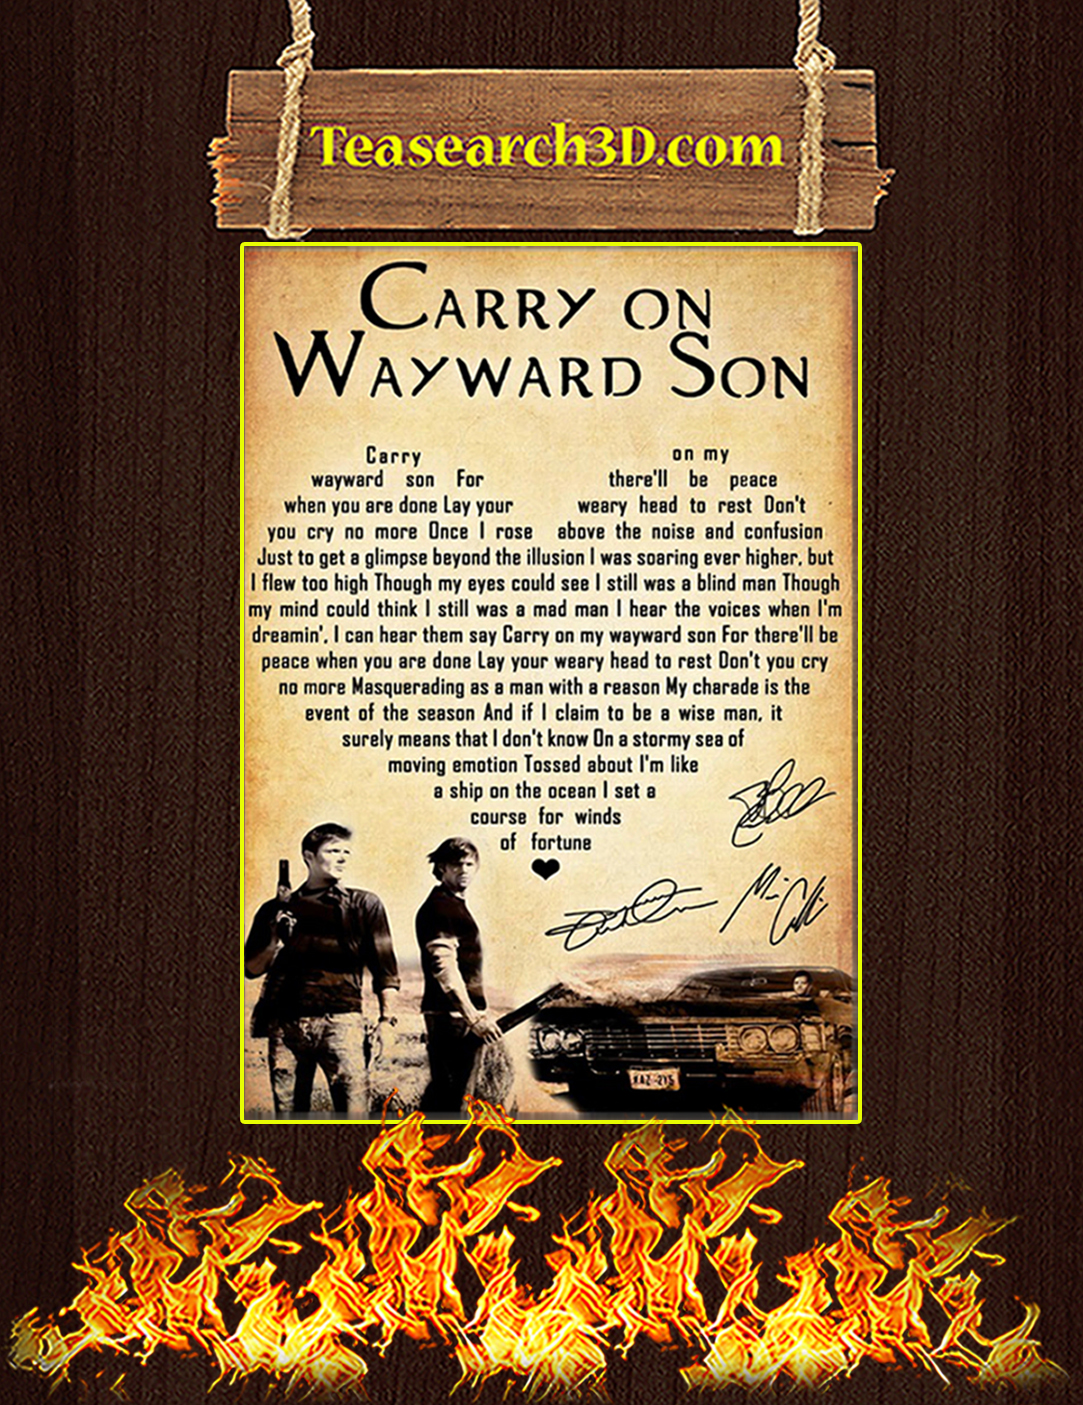 Supernatural carry on my wayward son signature poster A2